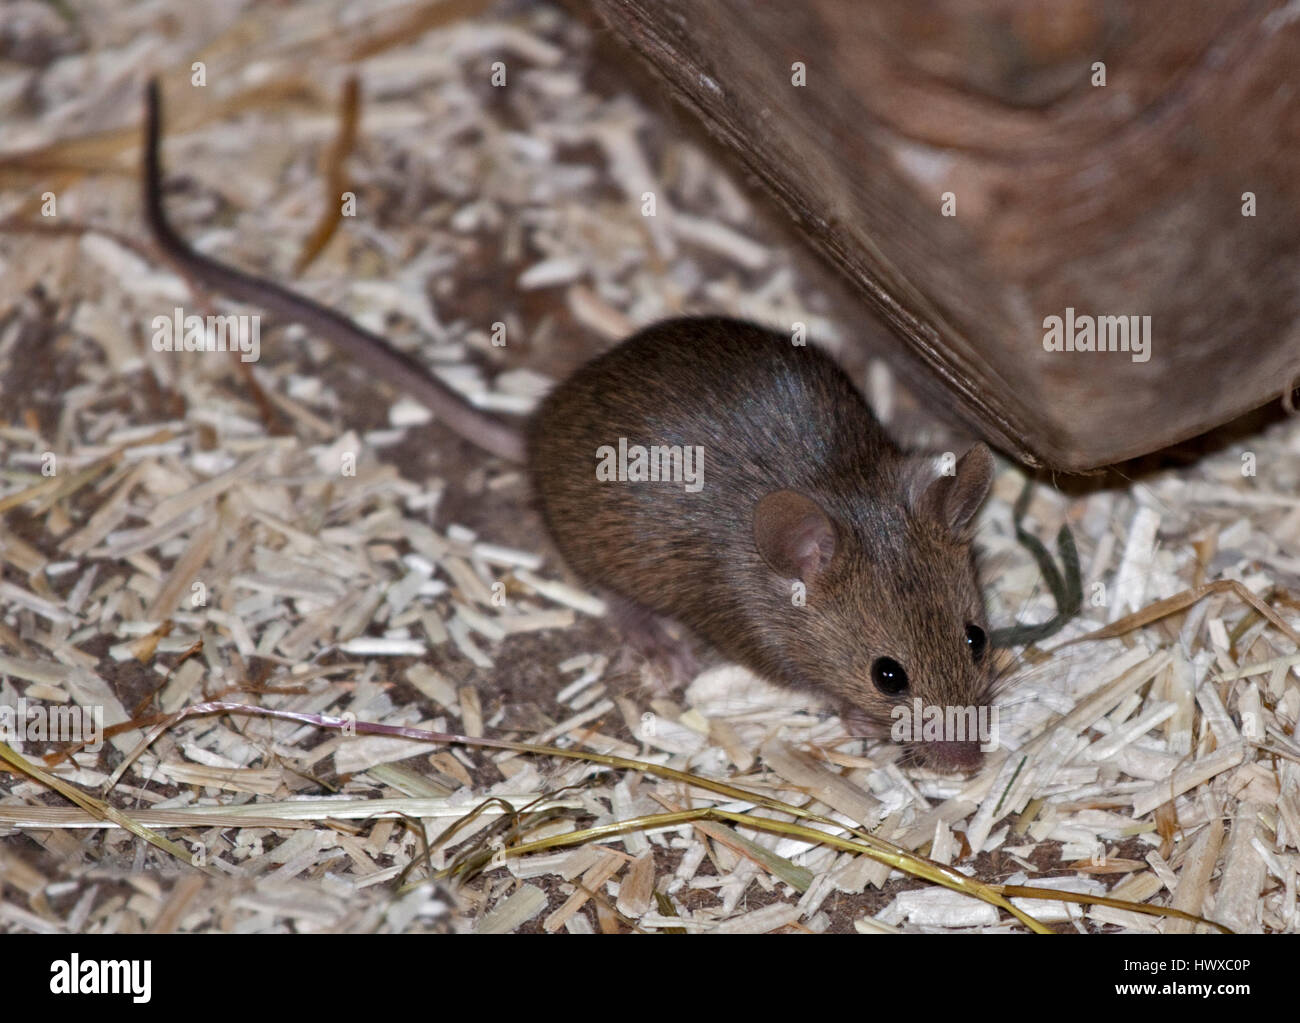 House Mouse (mus musculus) - Stock Image